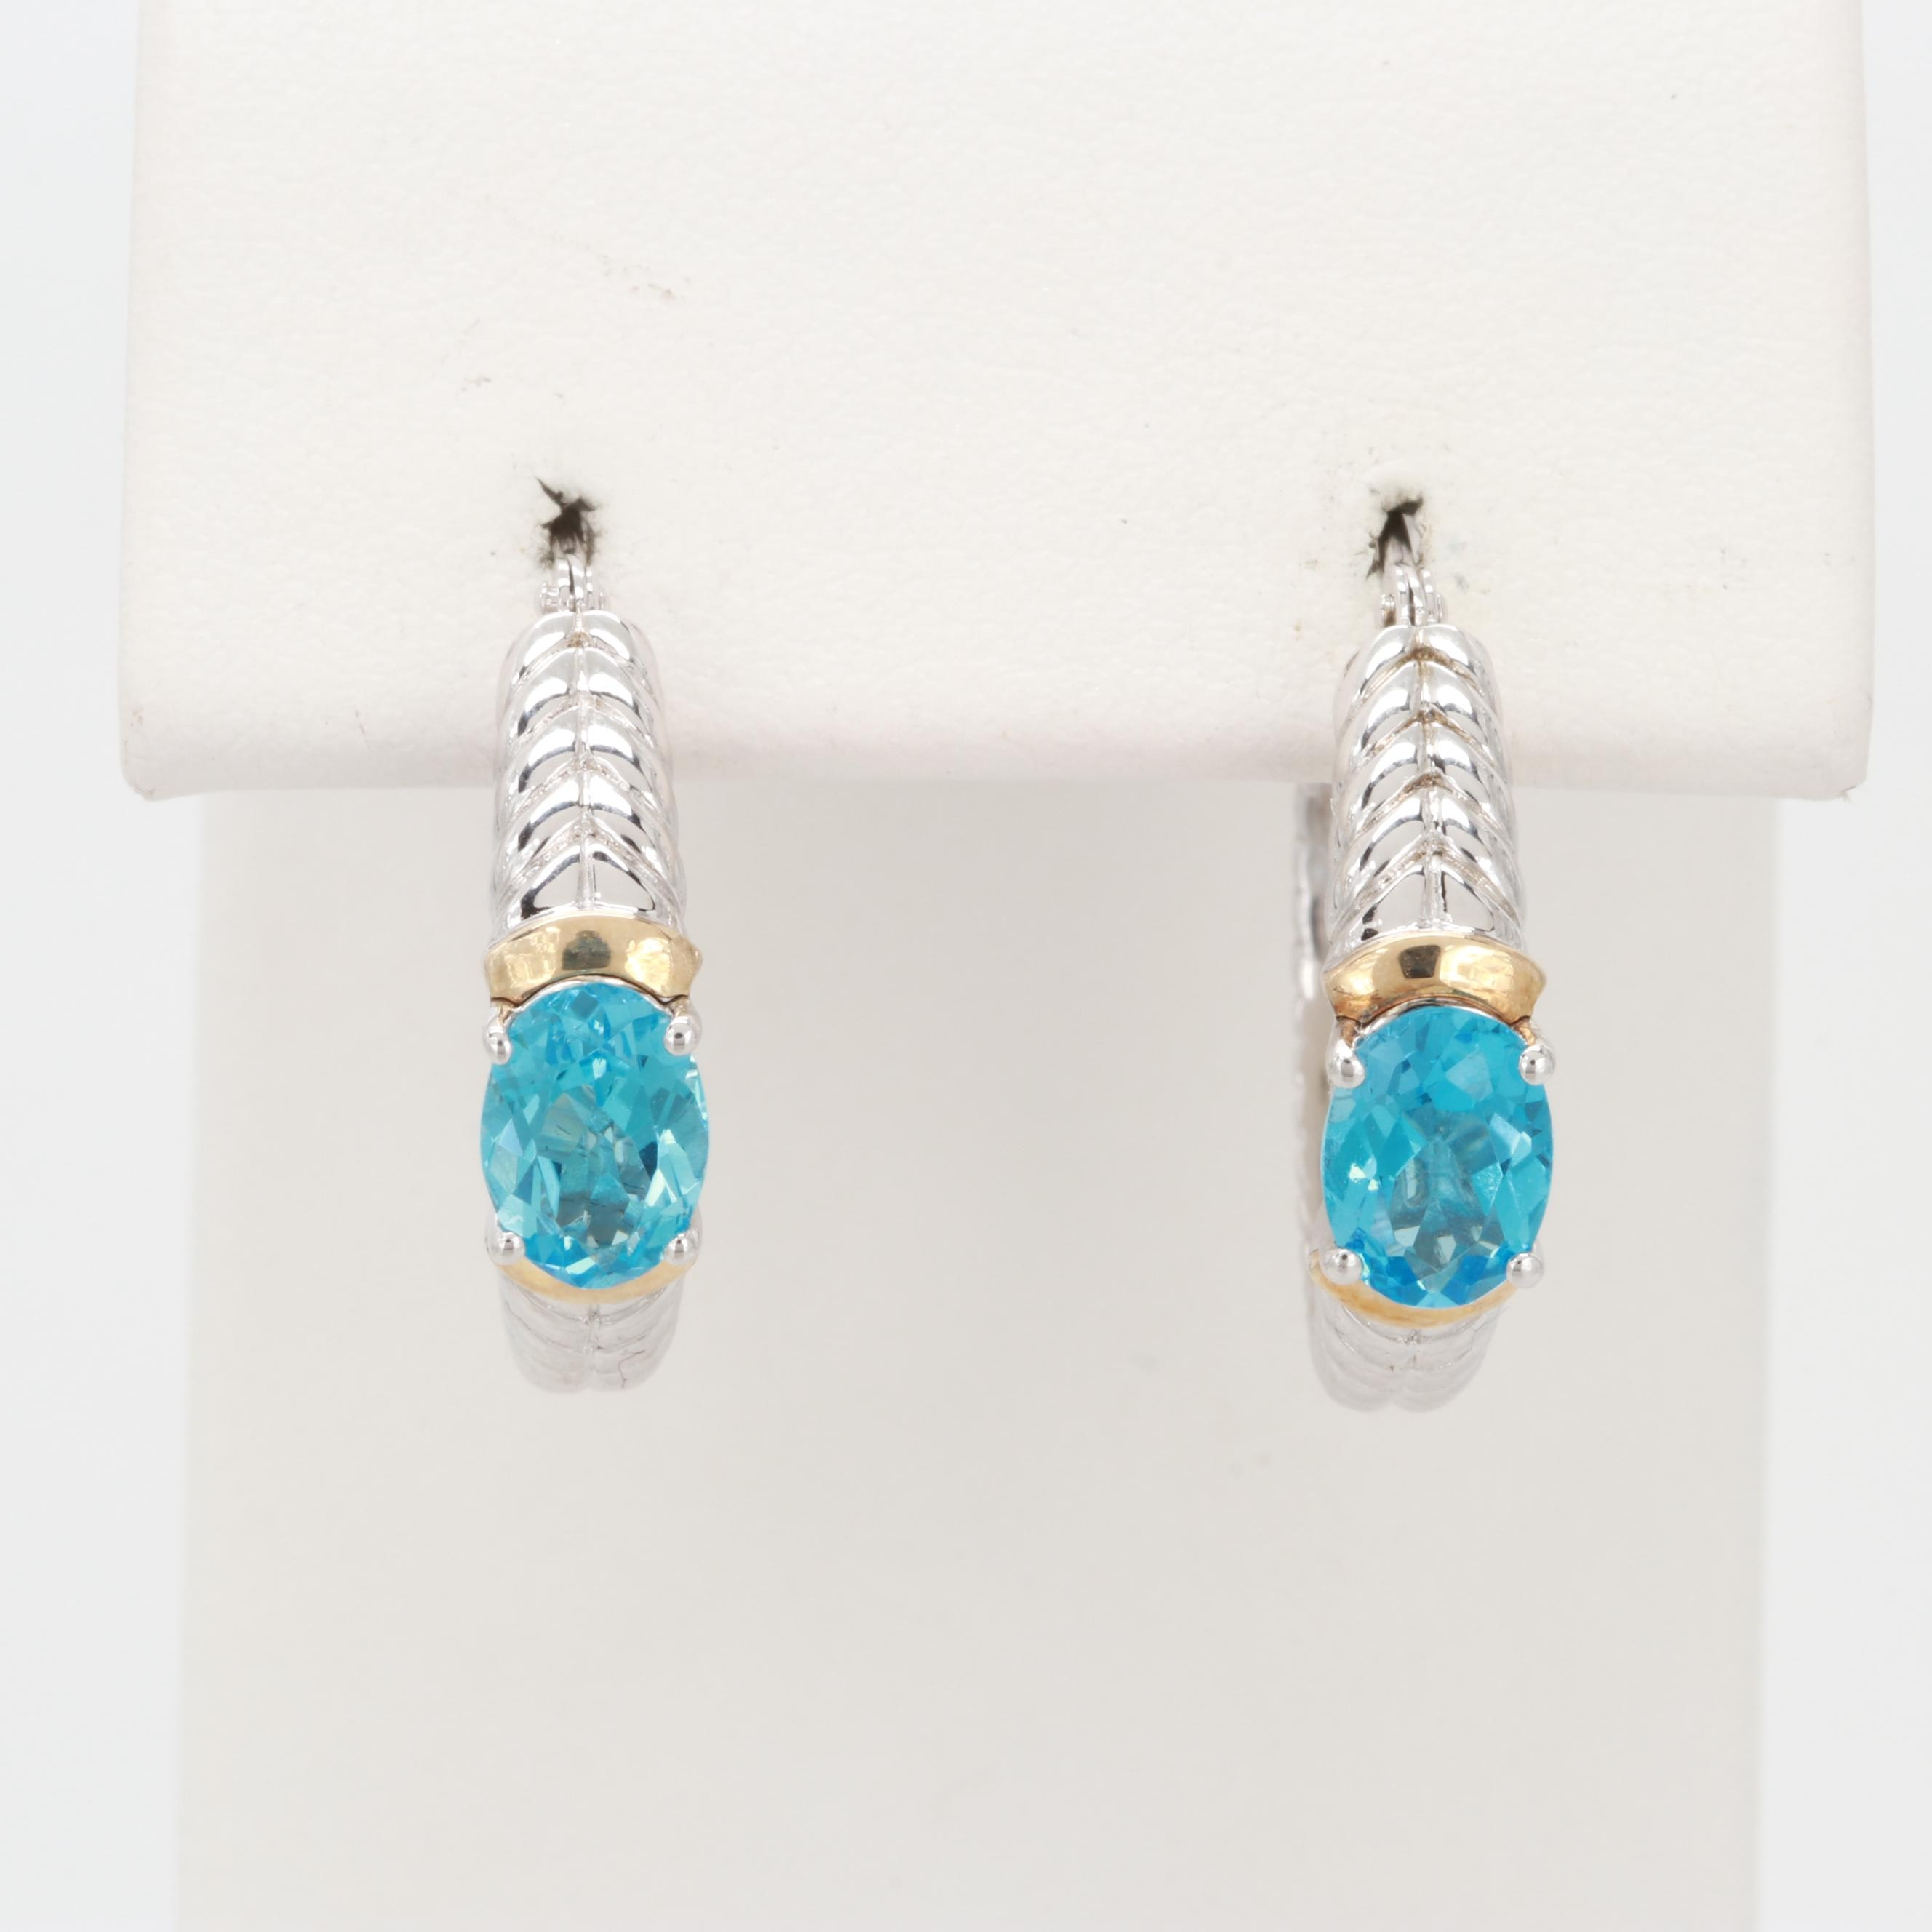 Sterling Silver Blue Topaz Hoop Earrings with 14K Yellow Gold Accents